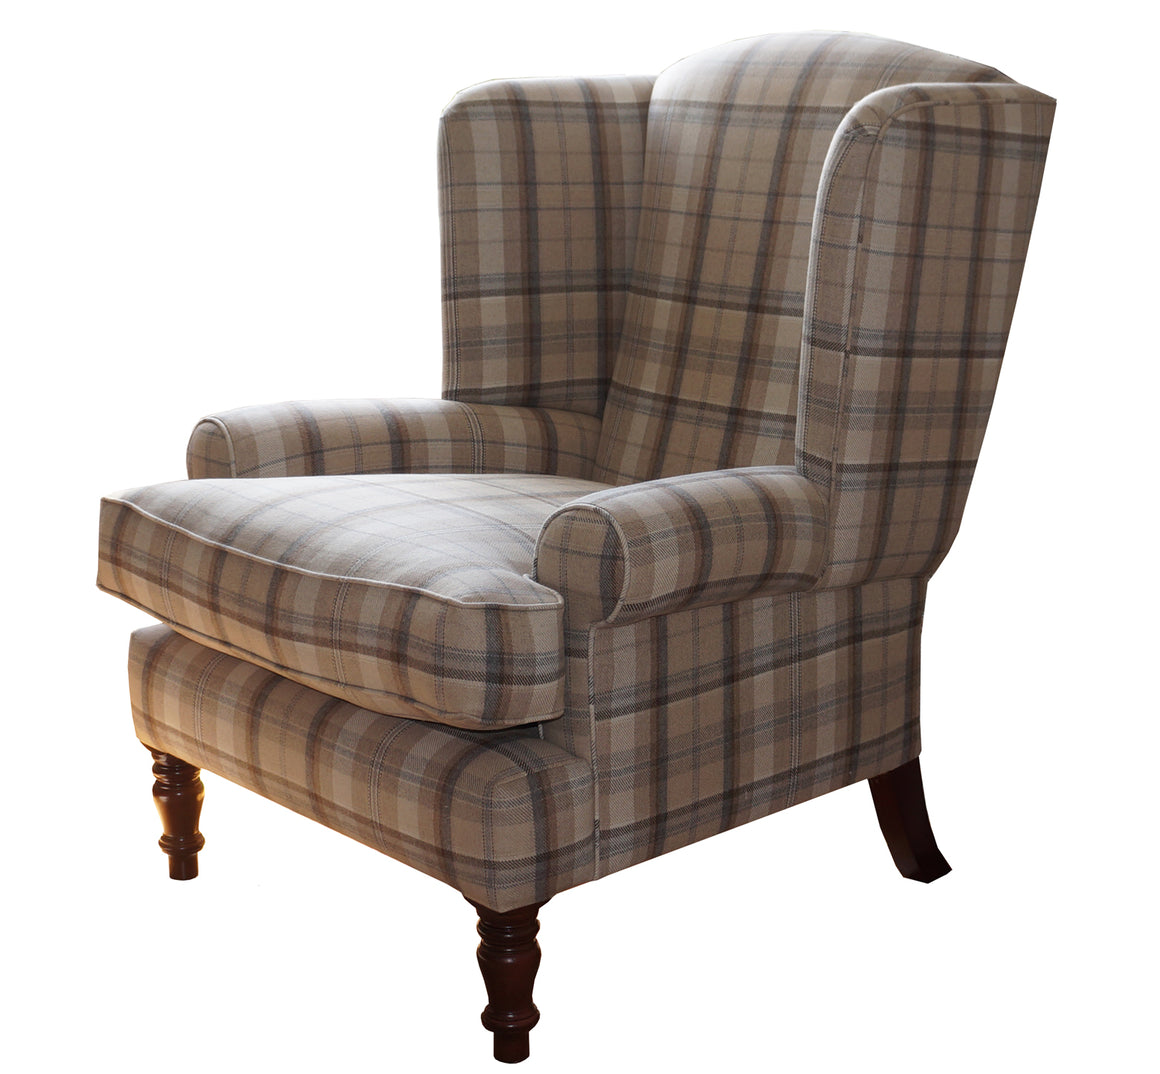 Jodphur Wing Chair in Smythson BUY ONE, GET ONE FREE